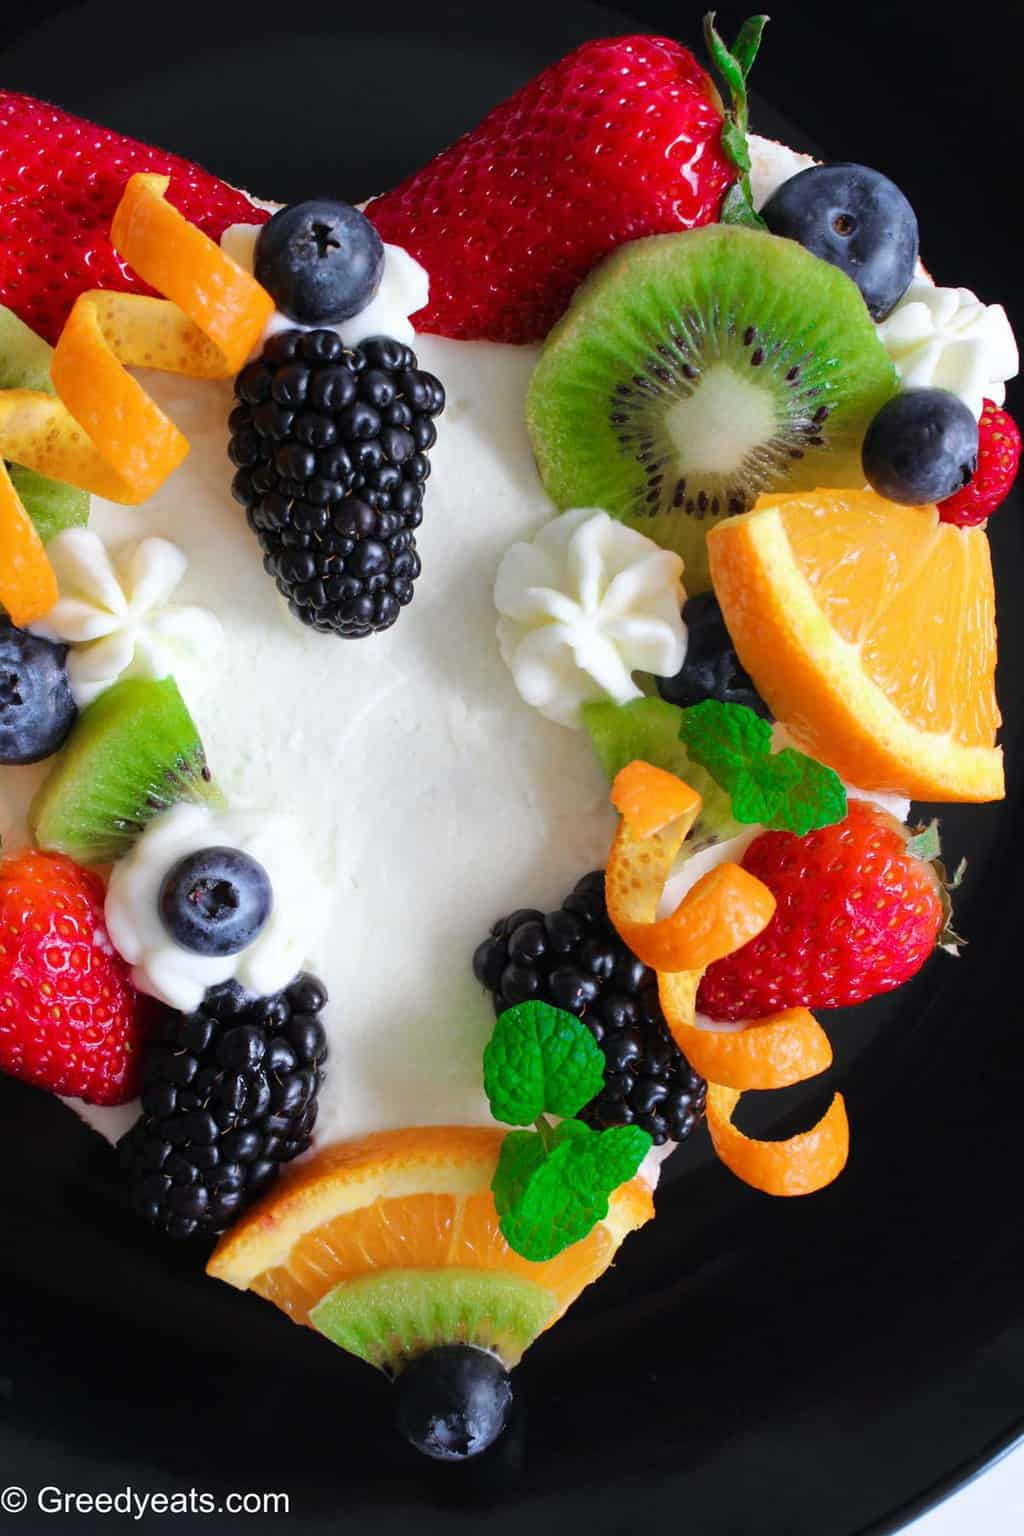 Light, fluffy and moist chiffon cake, bursting with orange flavors, served with fresh fruits.